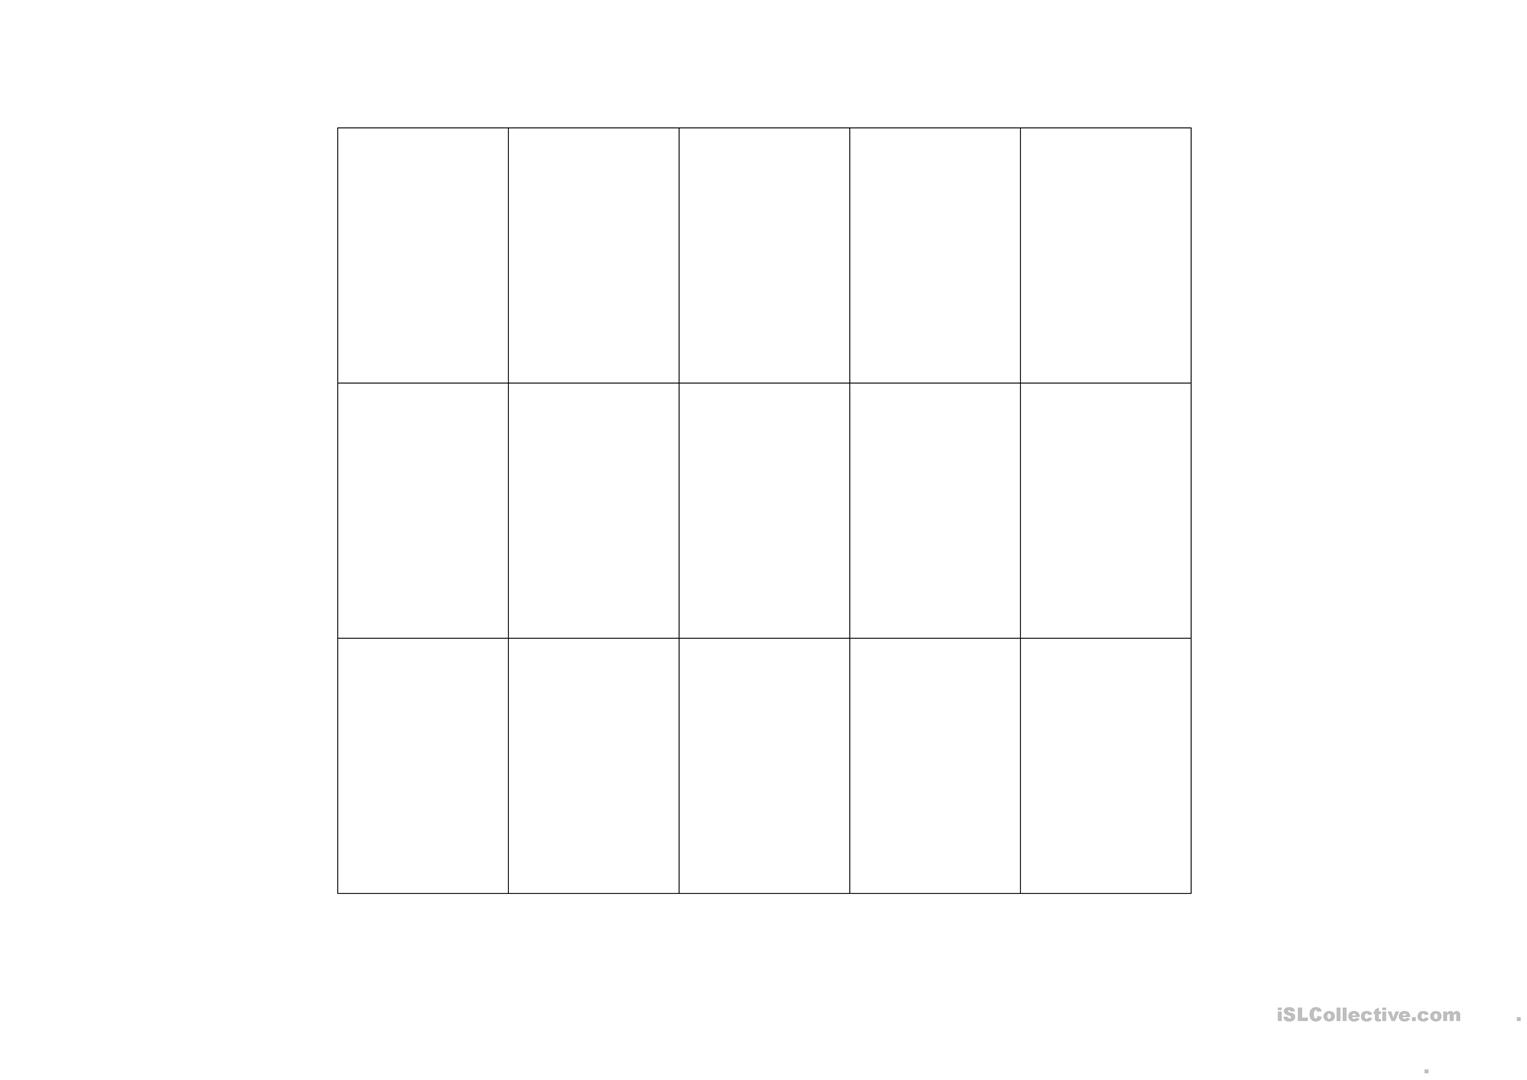 Spatial Relations Worksheets